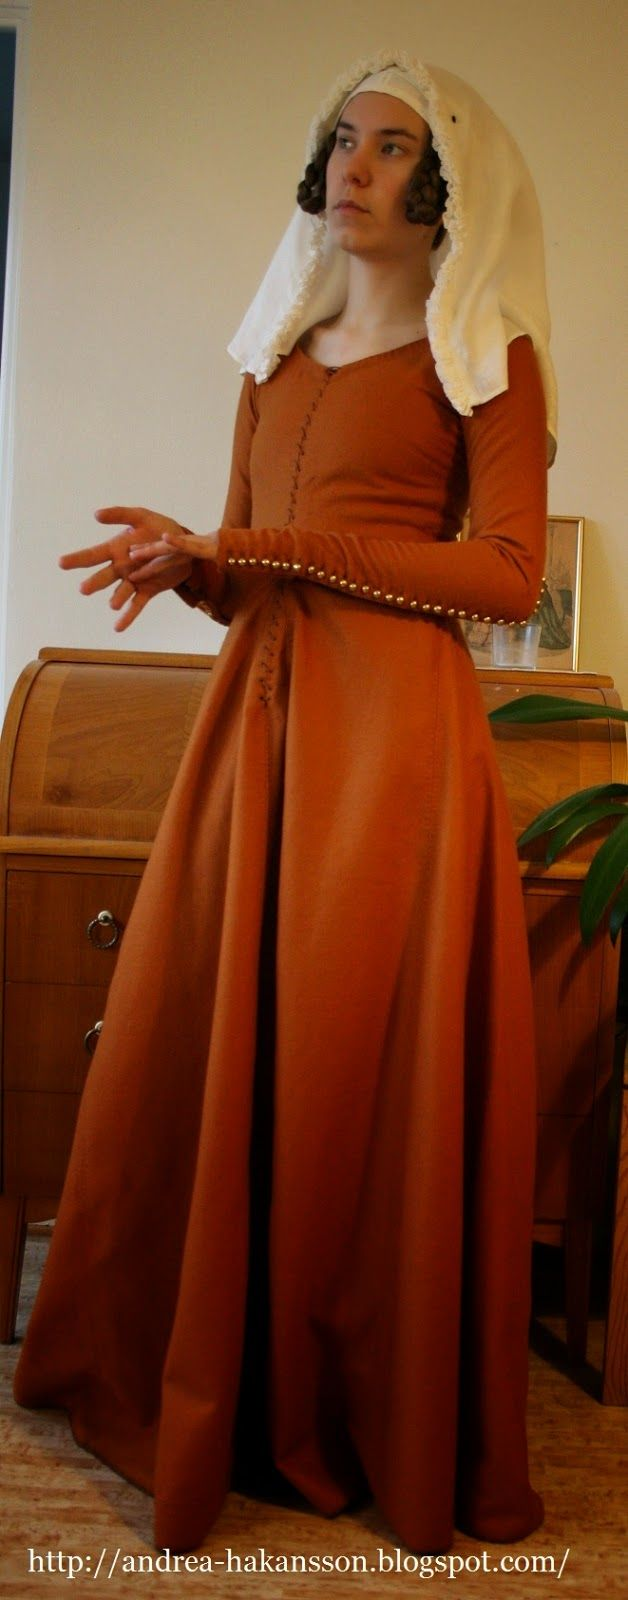 Andrea Håkansson - Recreating History - The Amber Dress - A dress for the wife of a knight